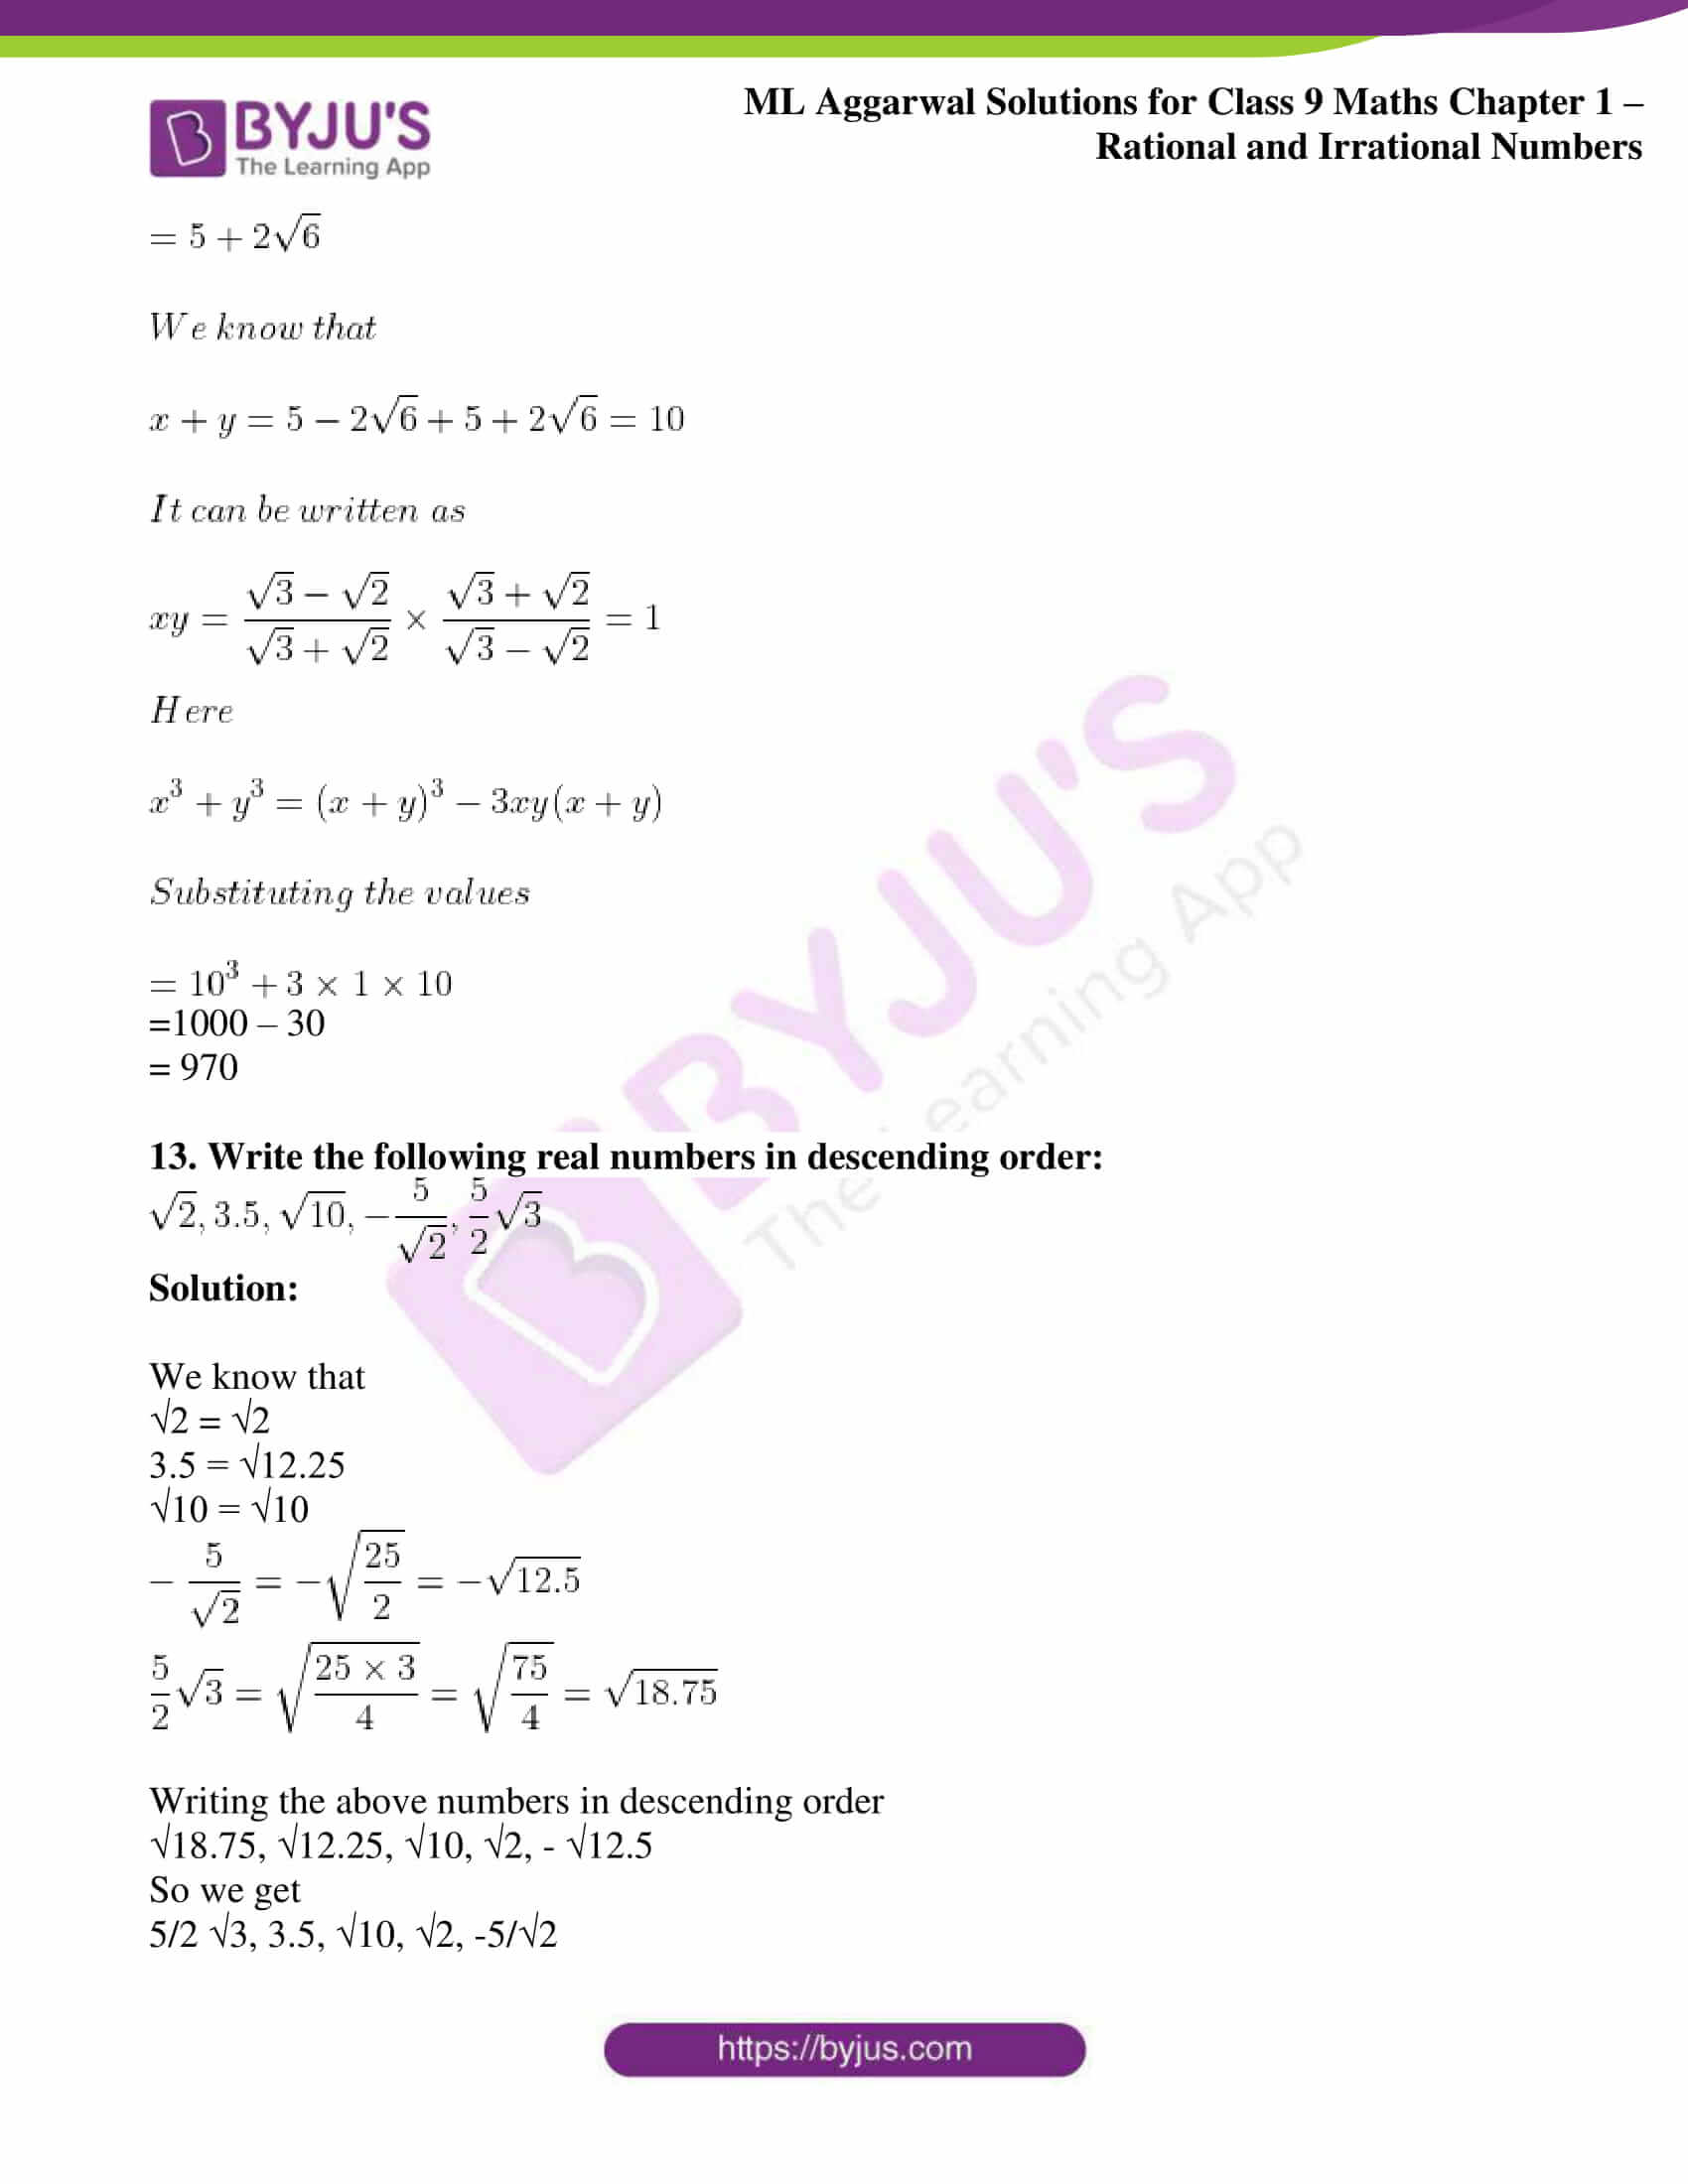 ml aggarwal solutions for class 9 maths chapter 1 78